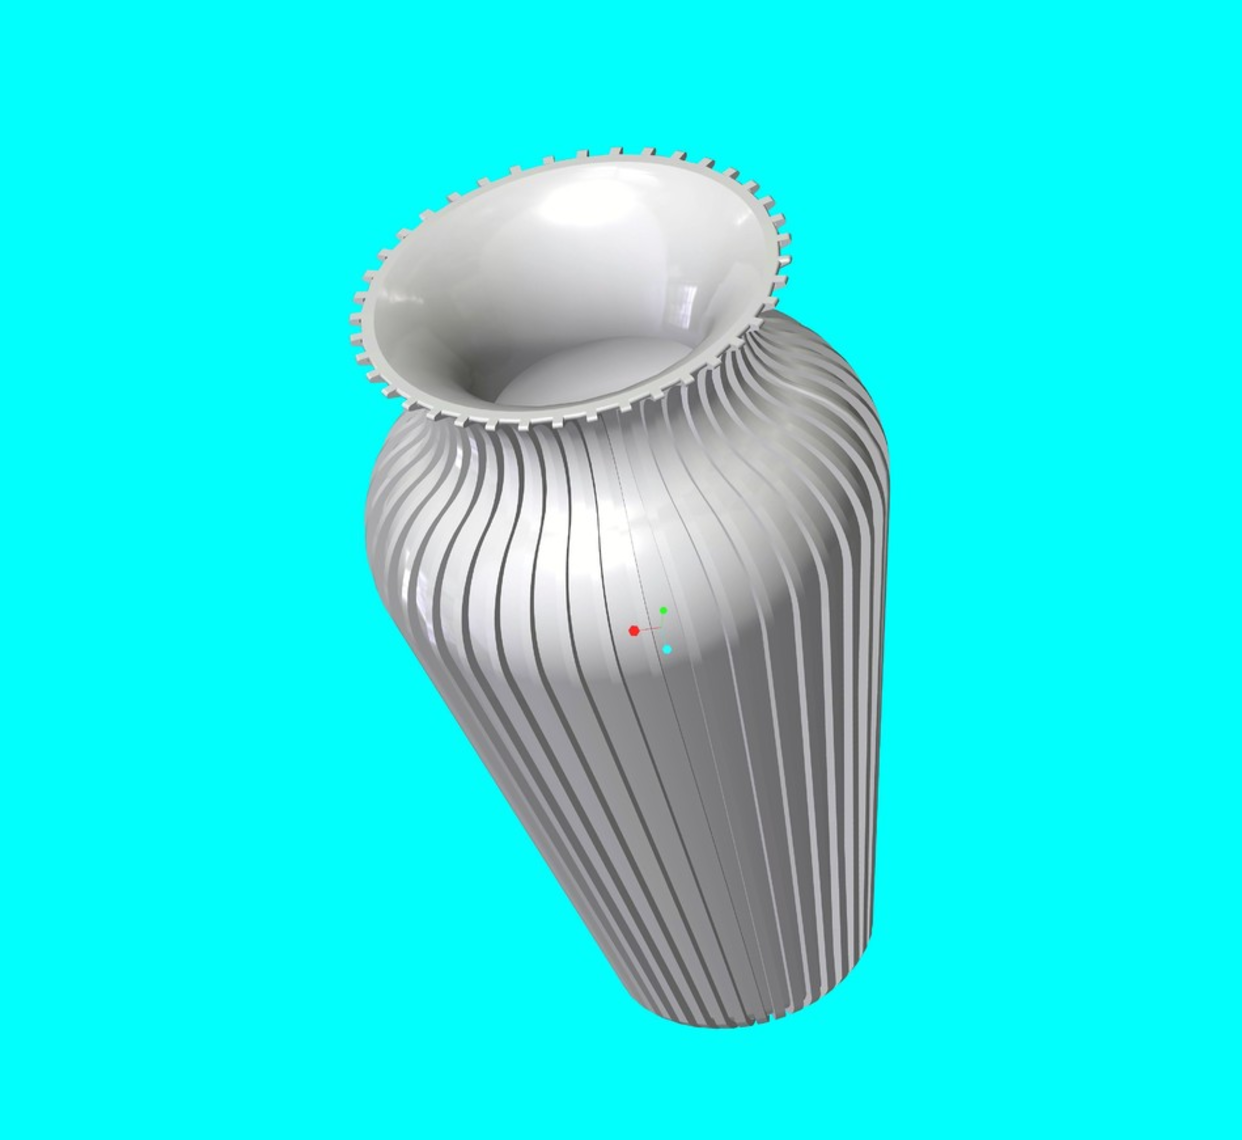 Capture d'écran 2017-09-21 à 15.03.21.png Download free STL file Slim Vase • 3D printer object, O3D